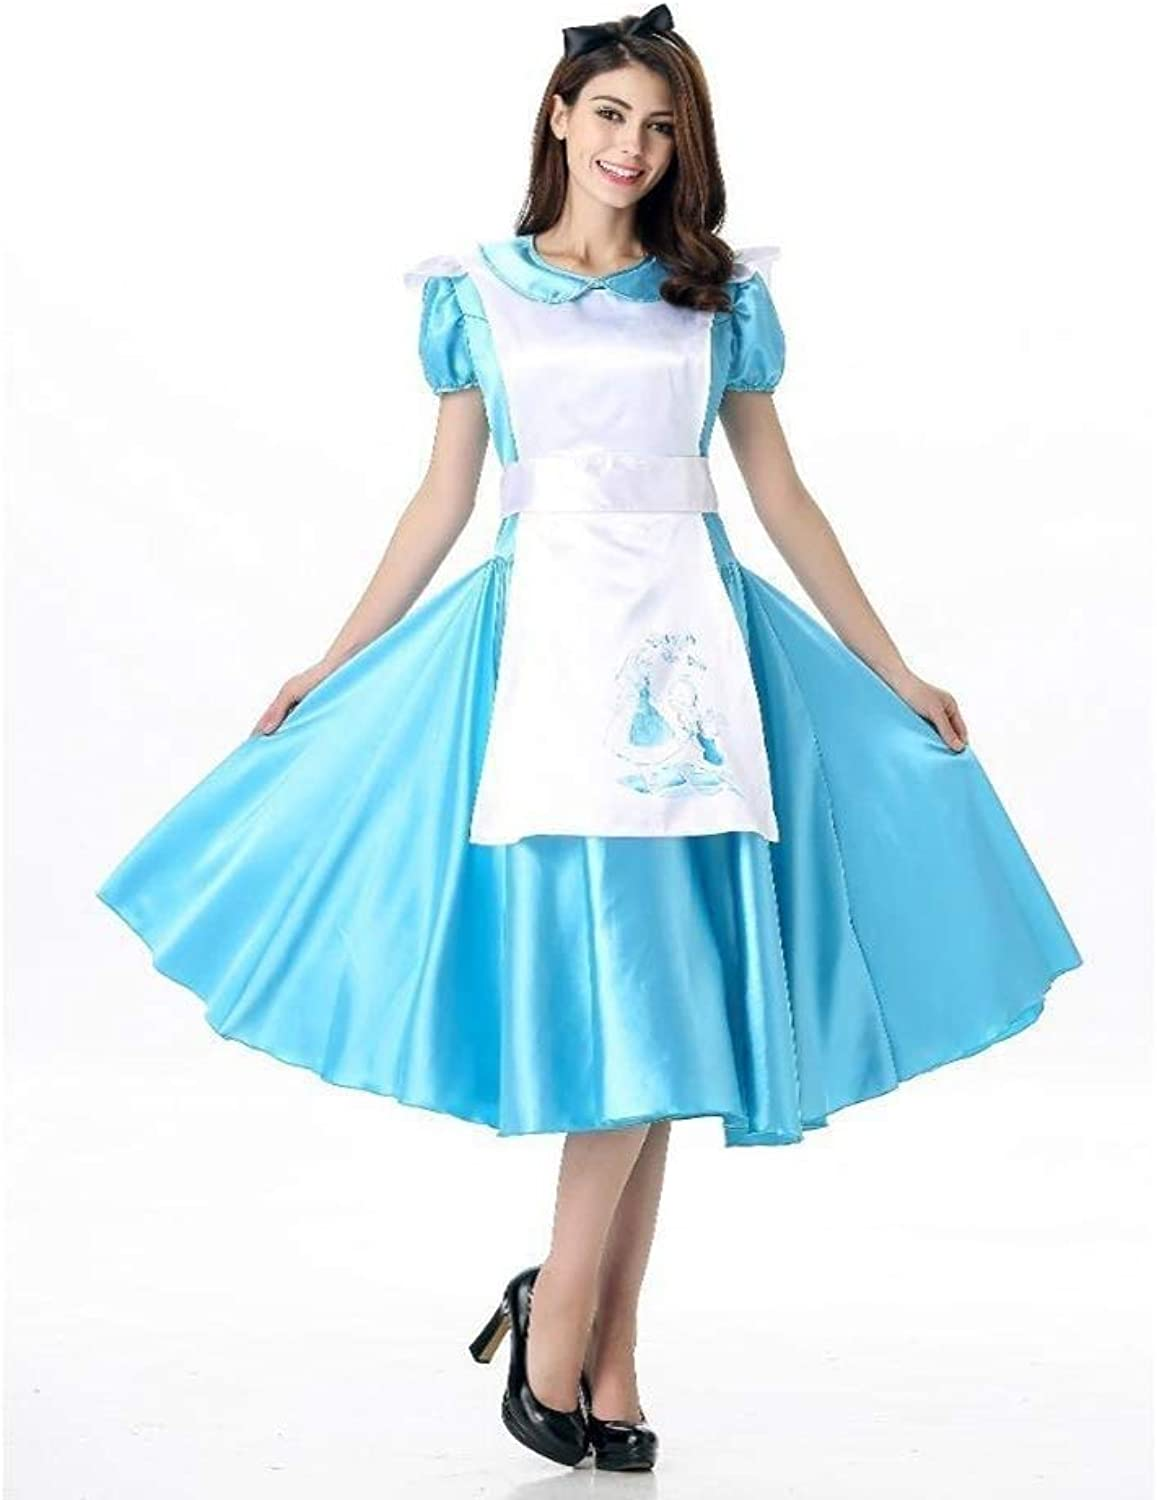 FashionCos1 bluee Halloween Costume For Kids Party Cute Maid Dress Cosplay Fancy Carnival Costumes Girls Anime Role Play